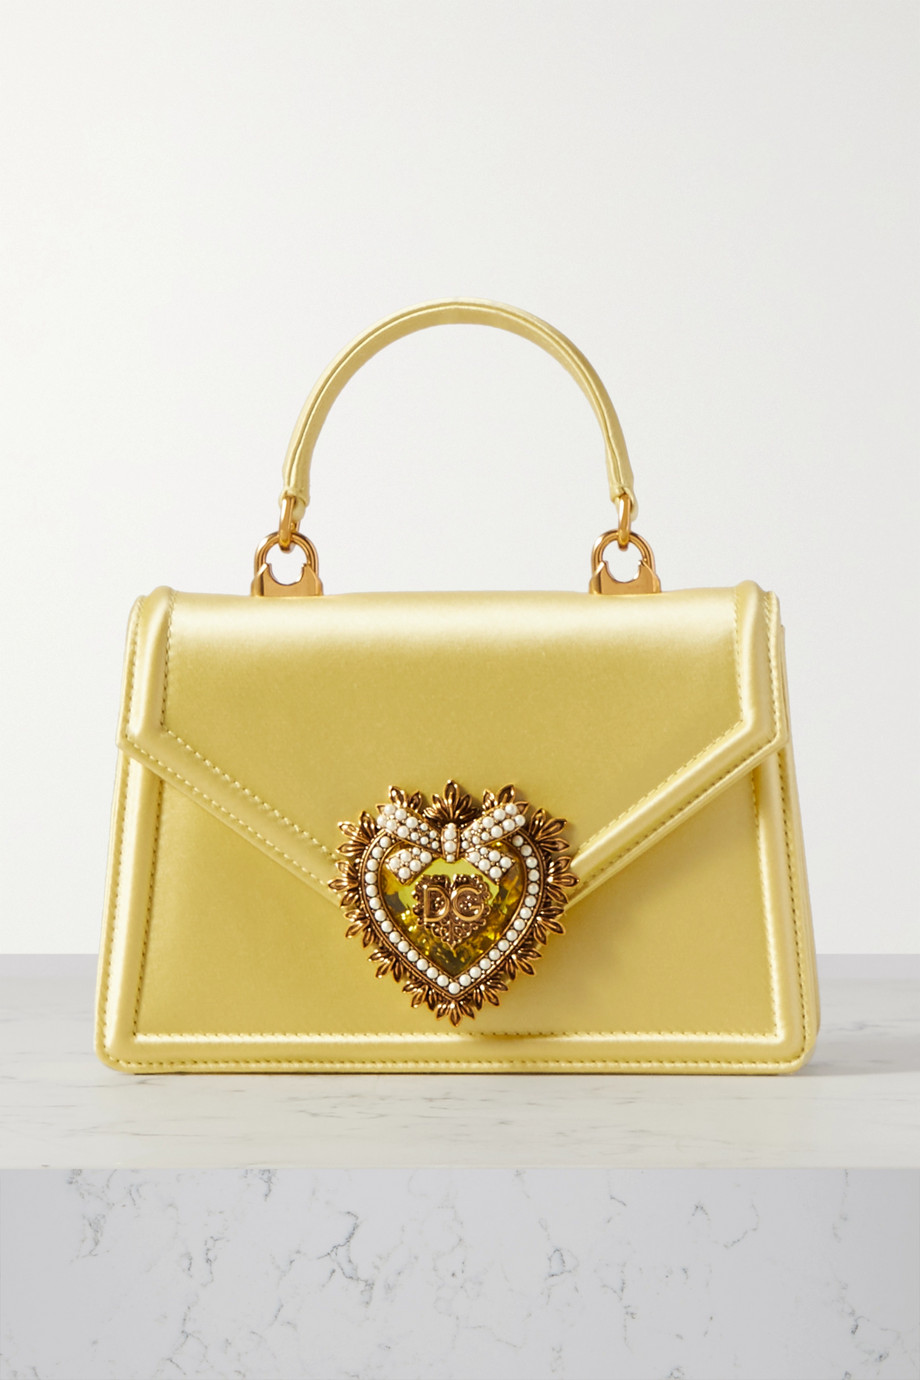 Dolce & Gabbana Devotion mini embellished satin tote